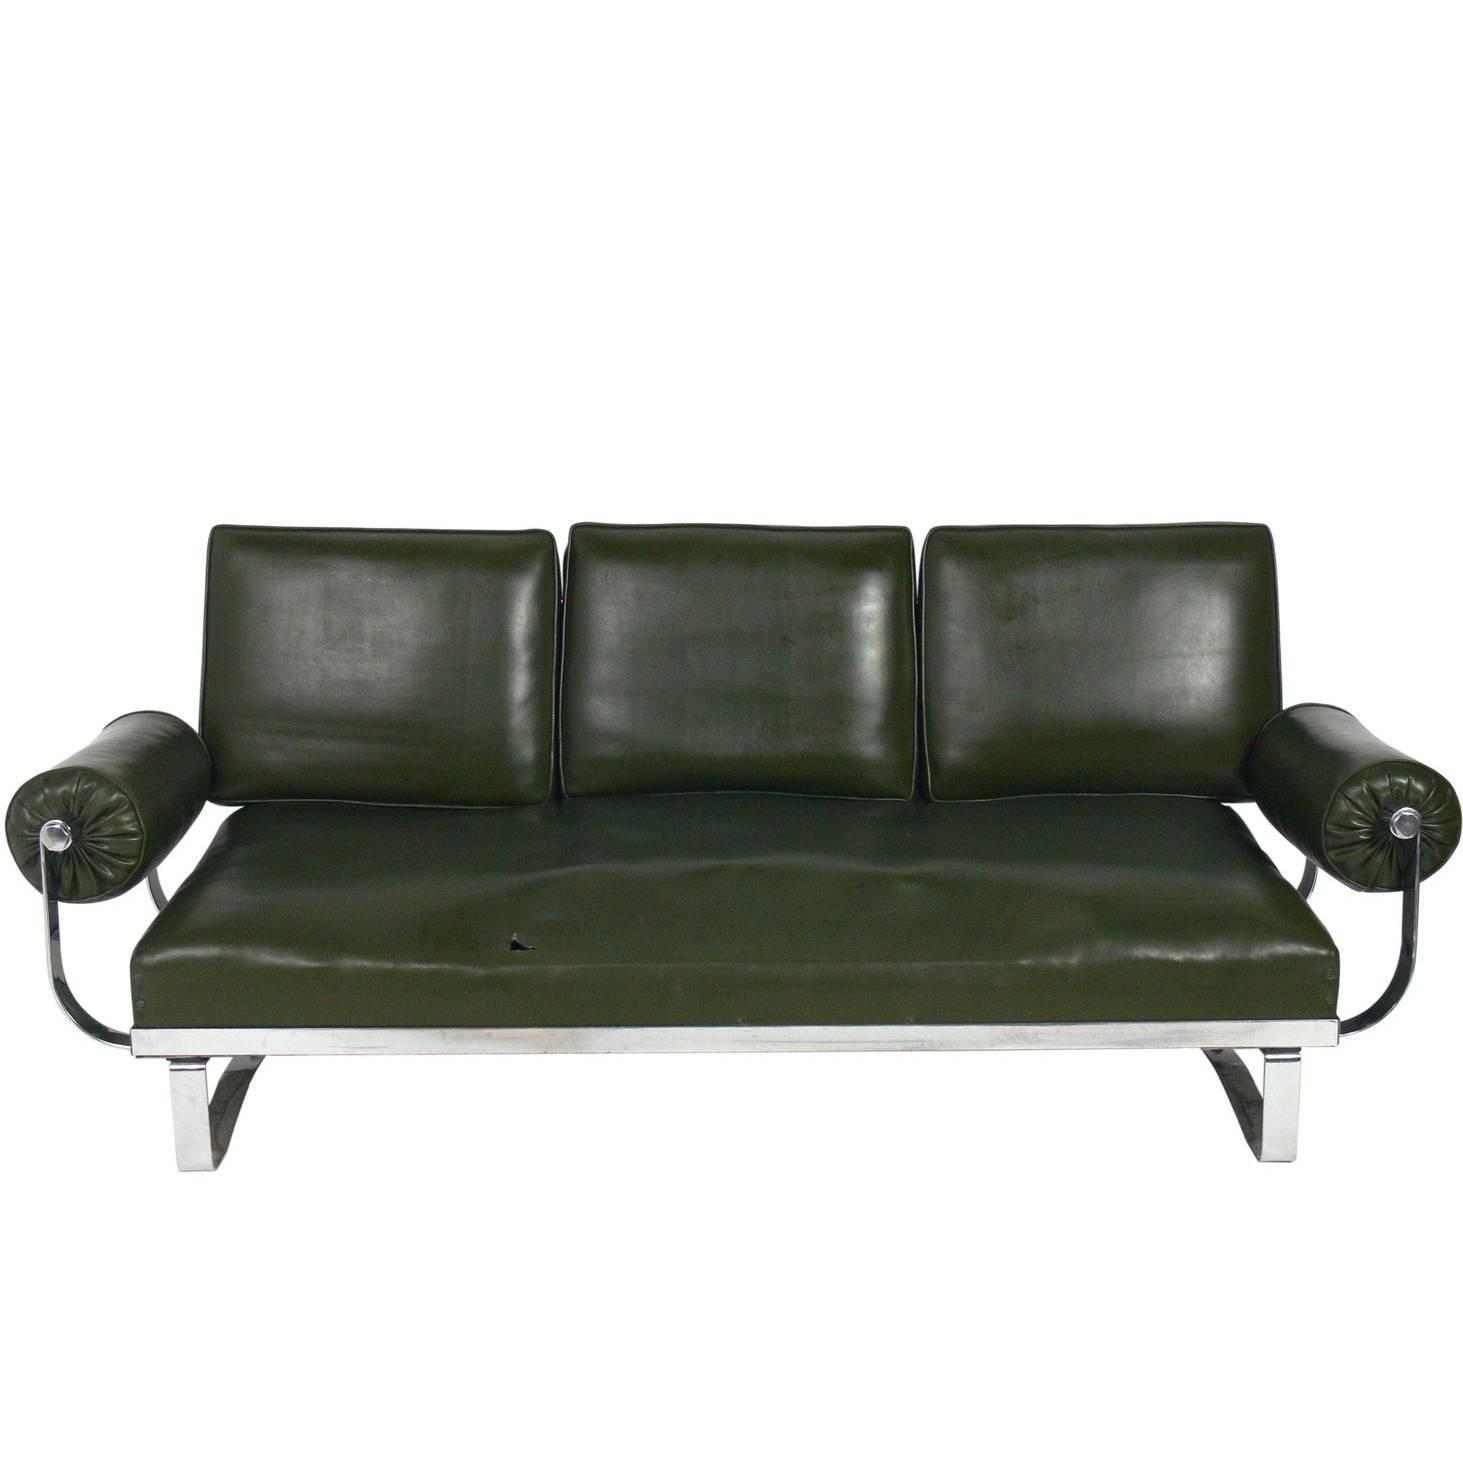 rare art deco chrome strap sofa by mckay for sale at 1stdibs. Black Bedroom Furniture Sets. Home Design Ideas